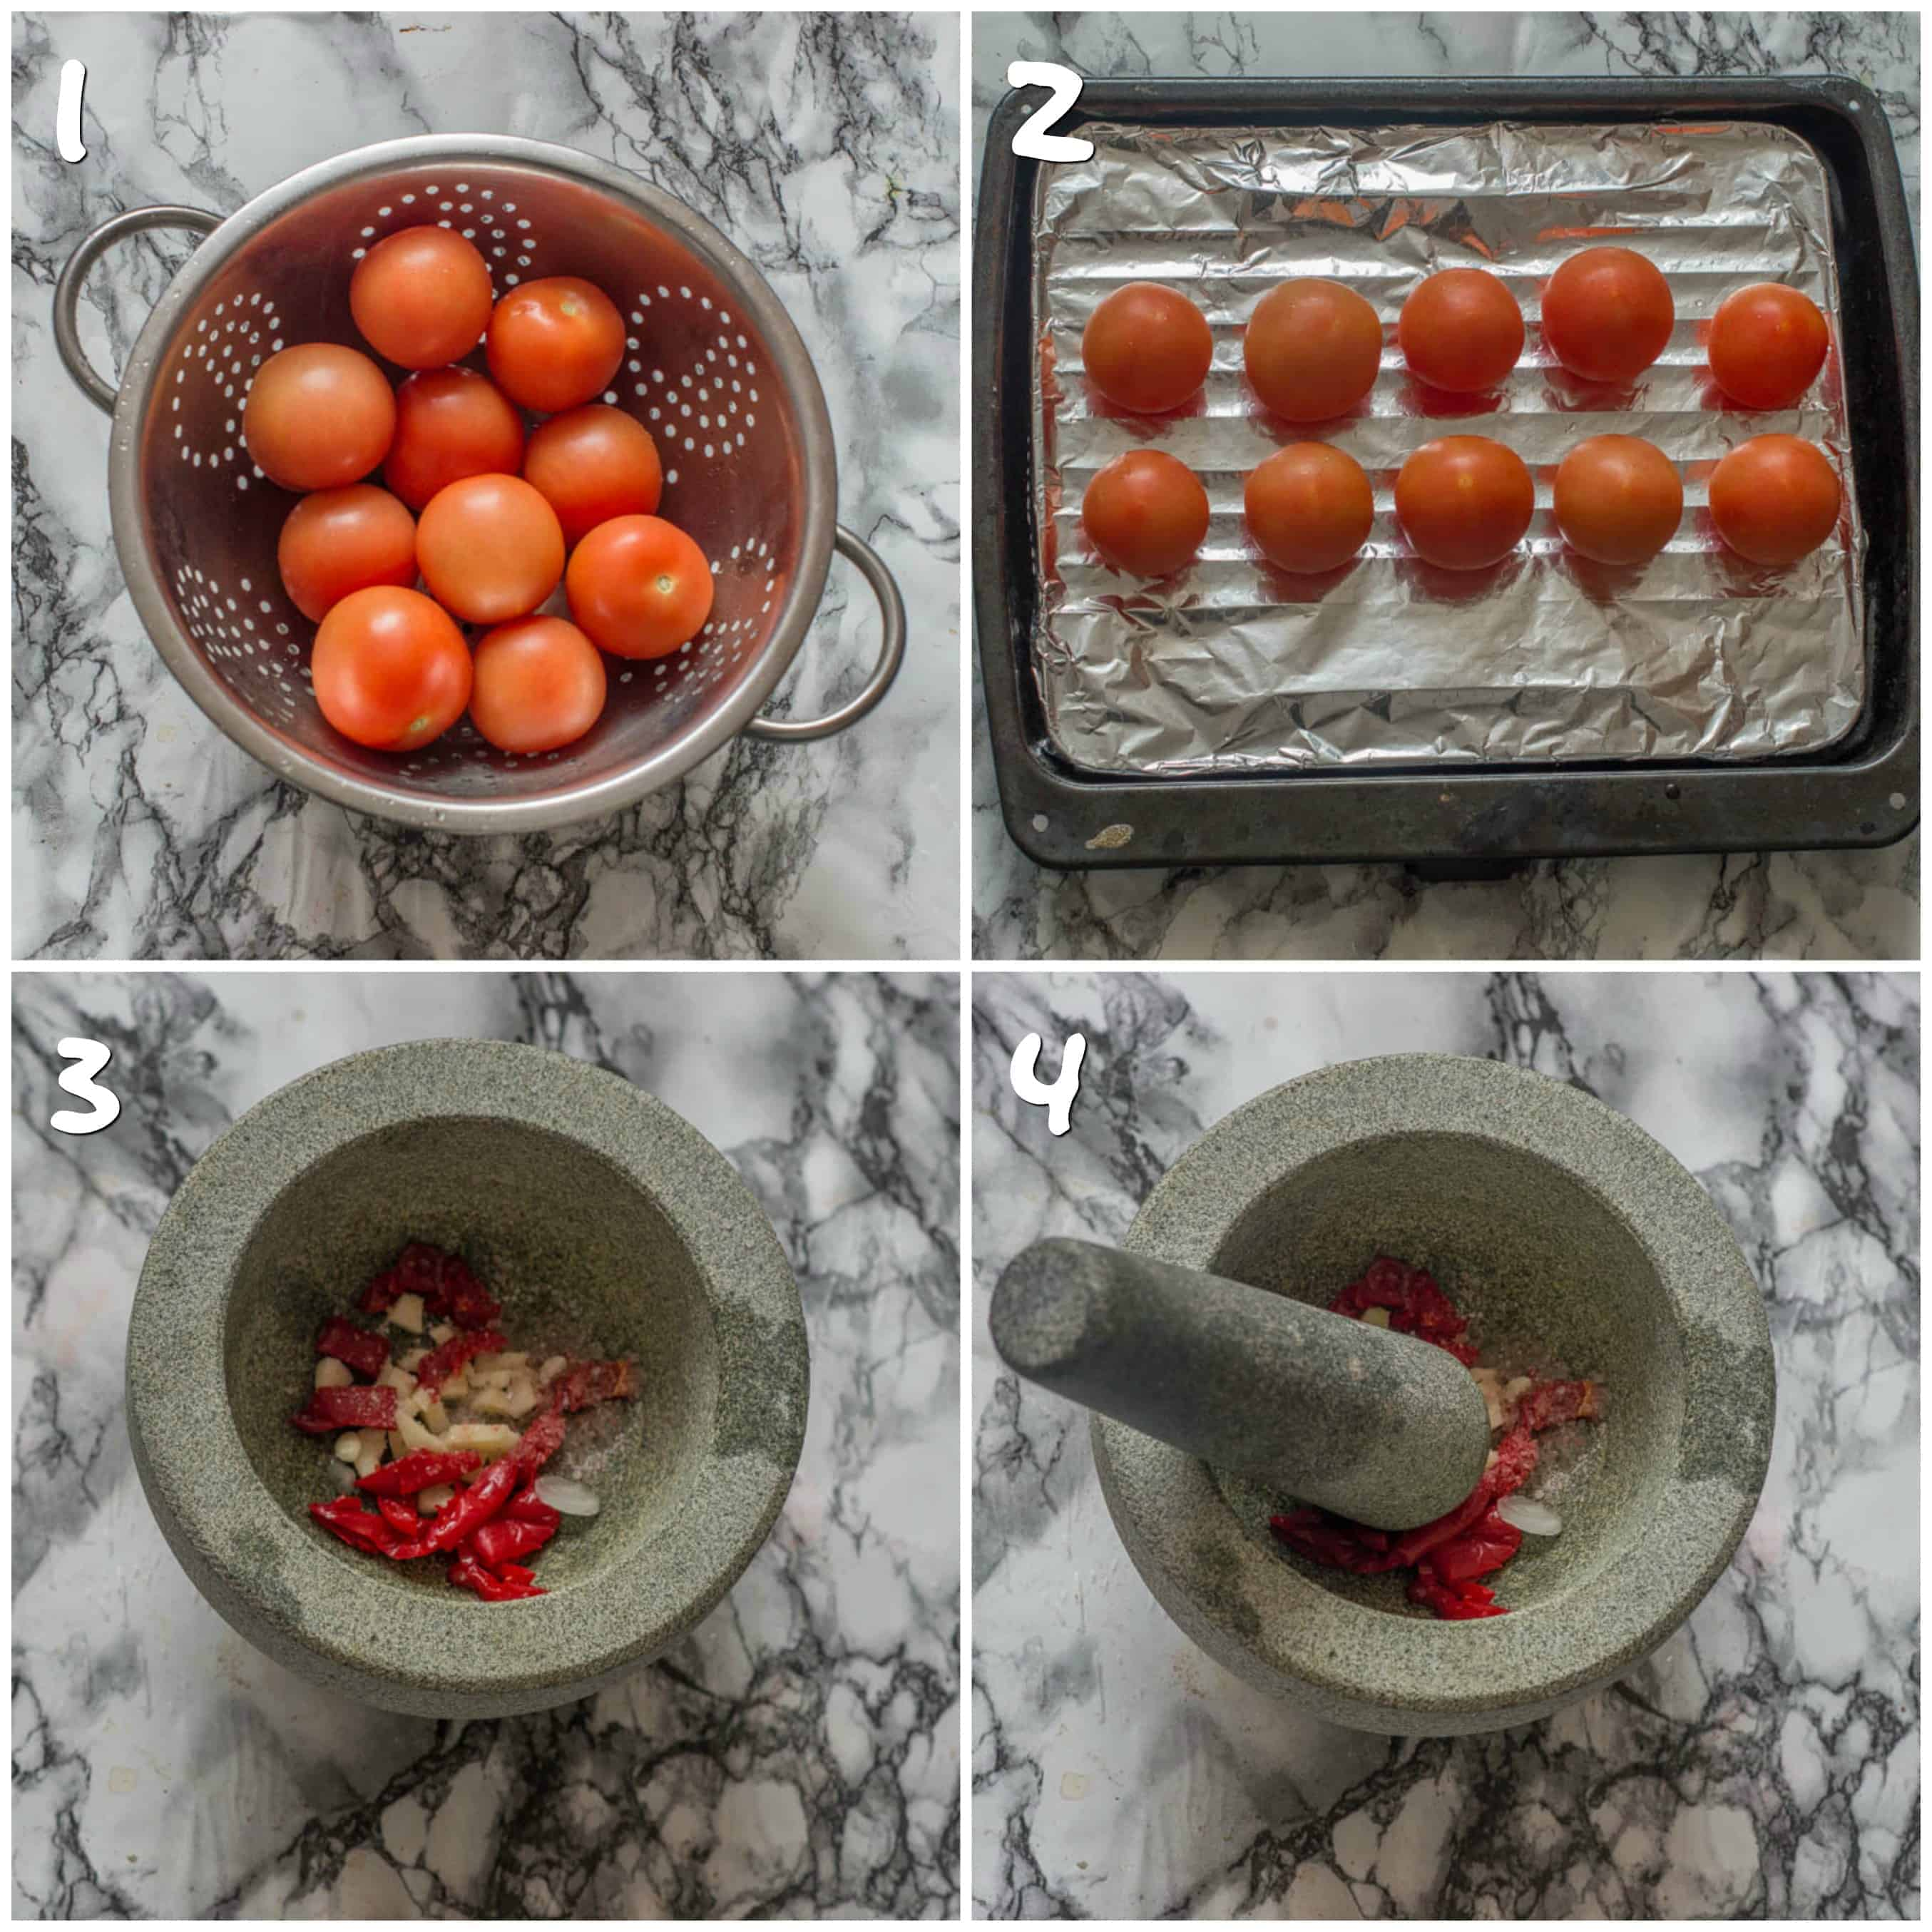 steps 1-4 grilling tomato and making paste